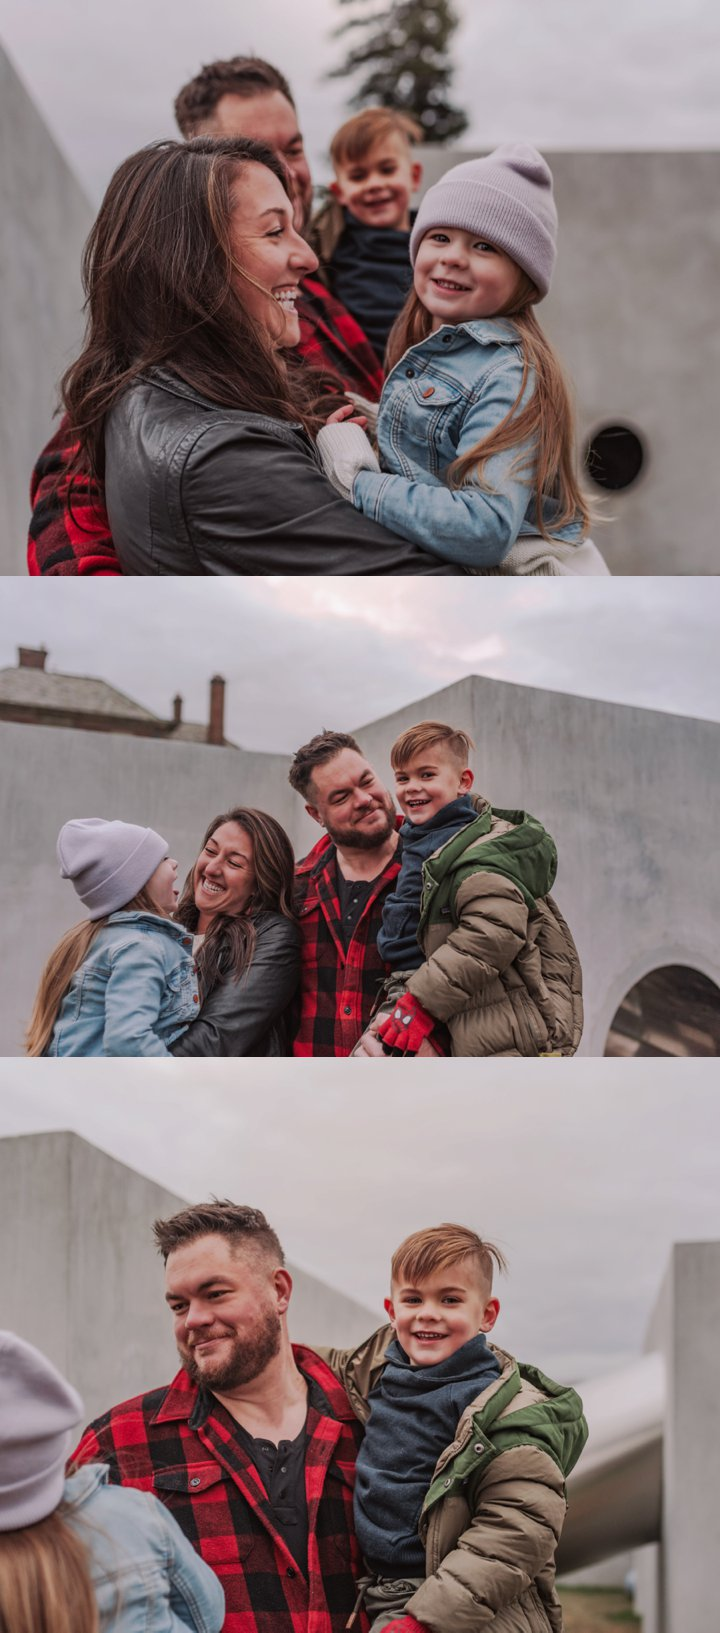 Fun, Relaxed Unposed Winter Family Photos /// Modern + Natural Winter Family Pictures by Boston and Cape Cod Family and Children's Portrait Photographer Asher + Oak ///  asherandoak.com